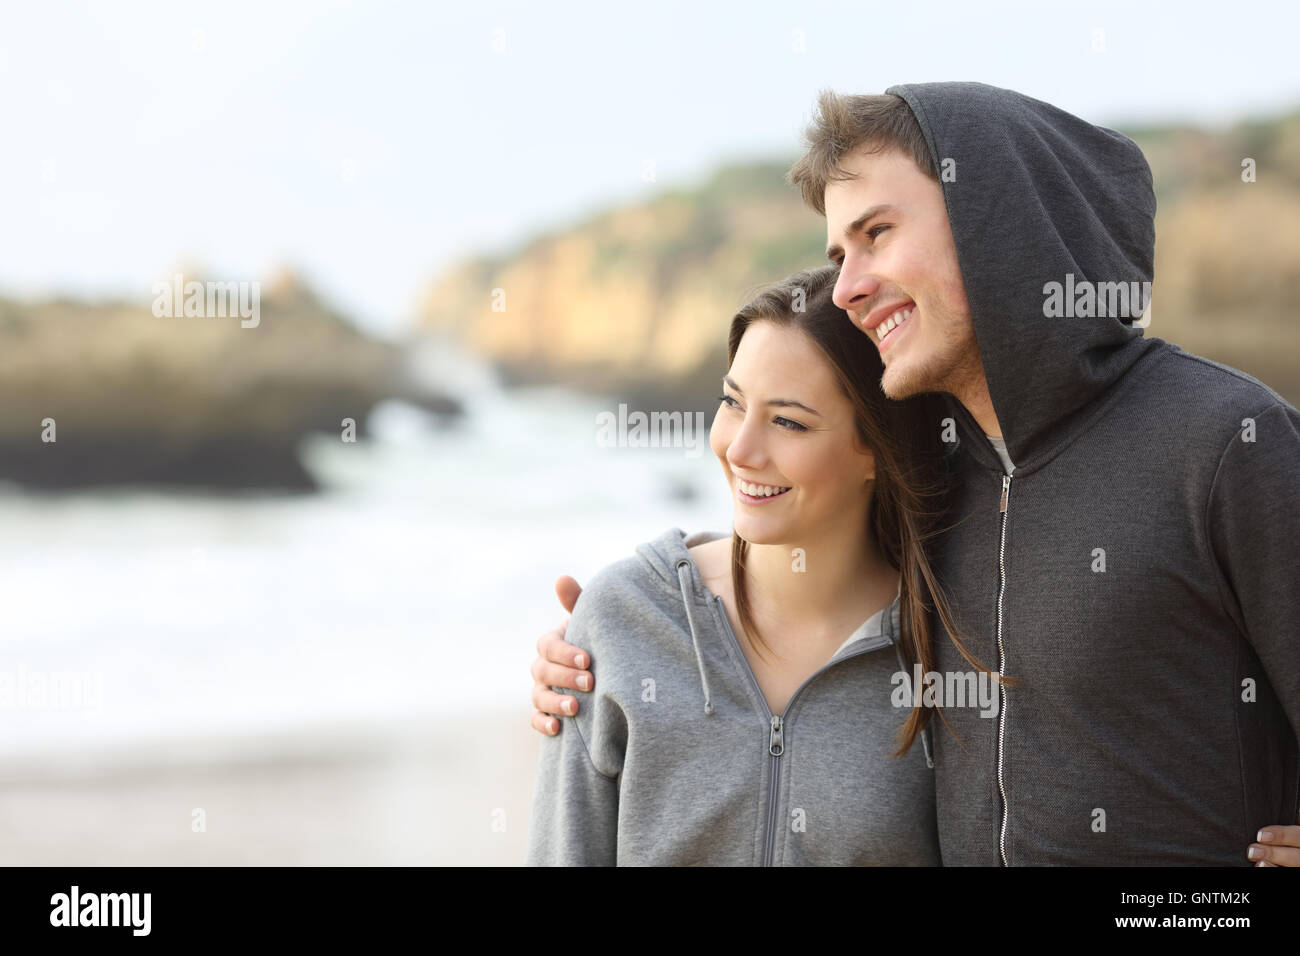 Happy couple of teens hugging and taking a walk on the beach - Stock Image